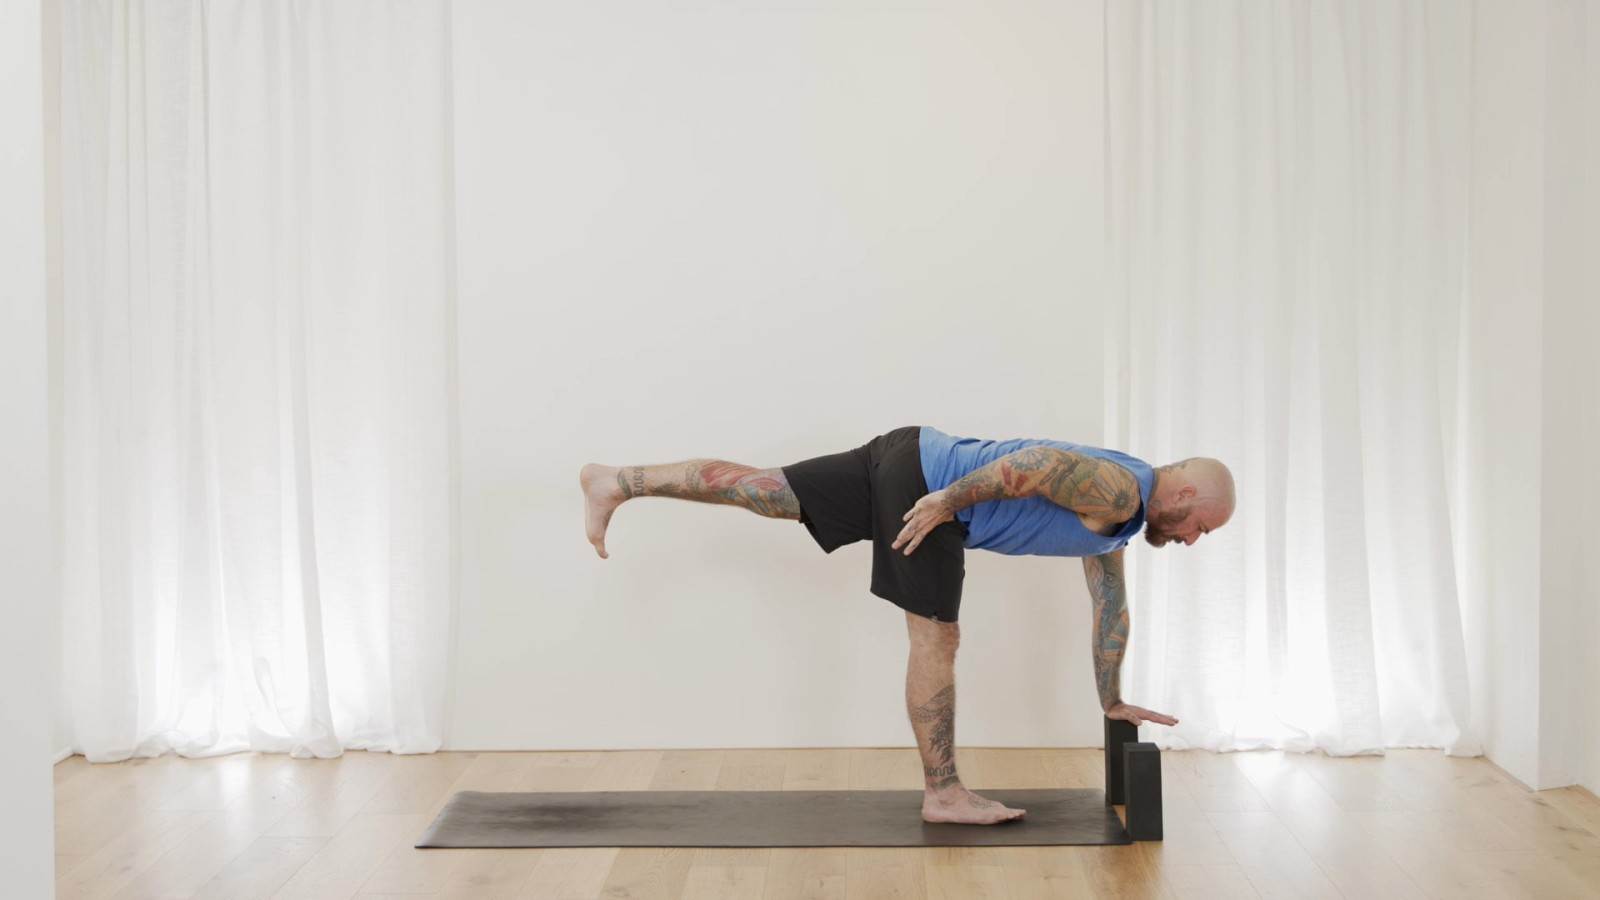 Yoga Foundations - Work Your Warrior 3 with Ari Levanael